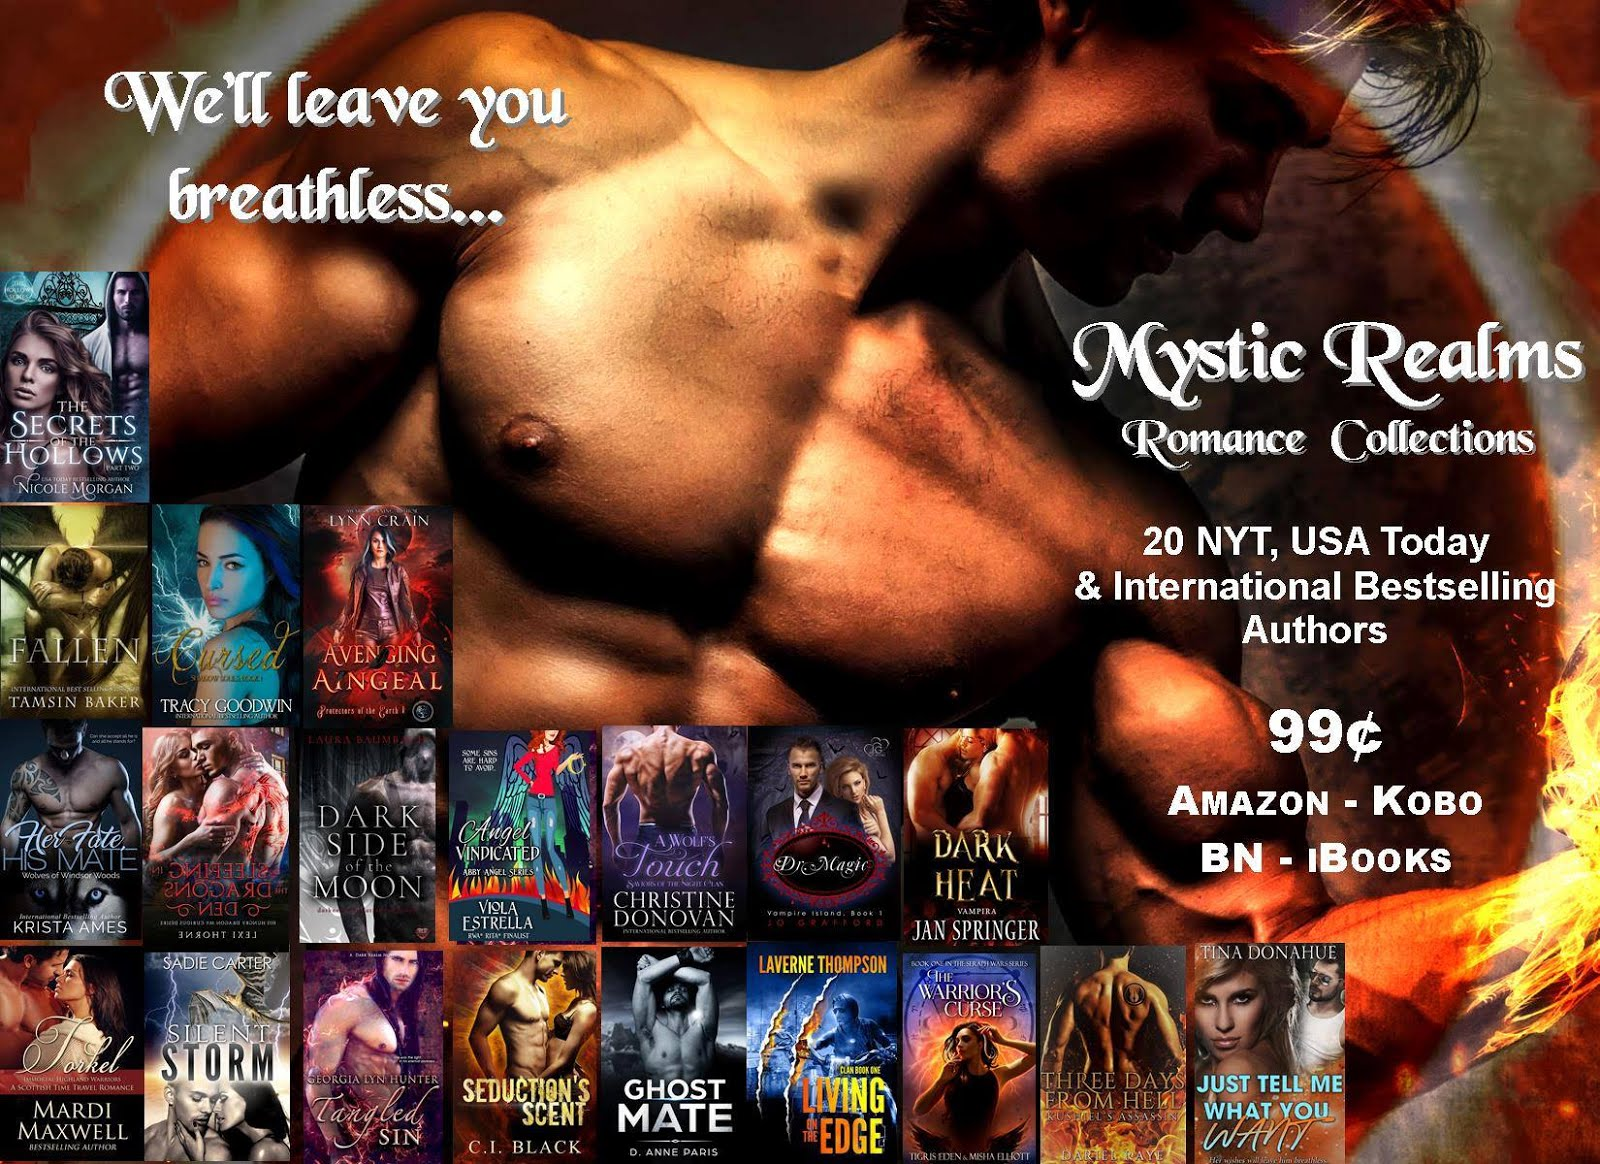 Mystic Realms BookBub Giveaway